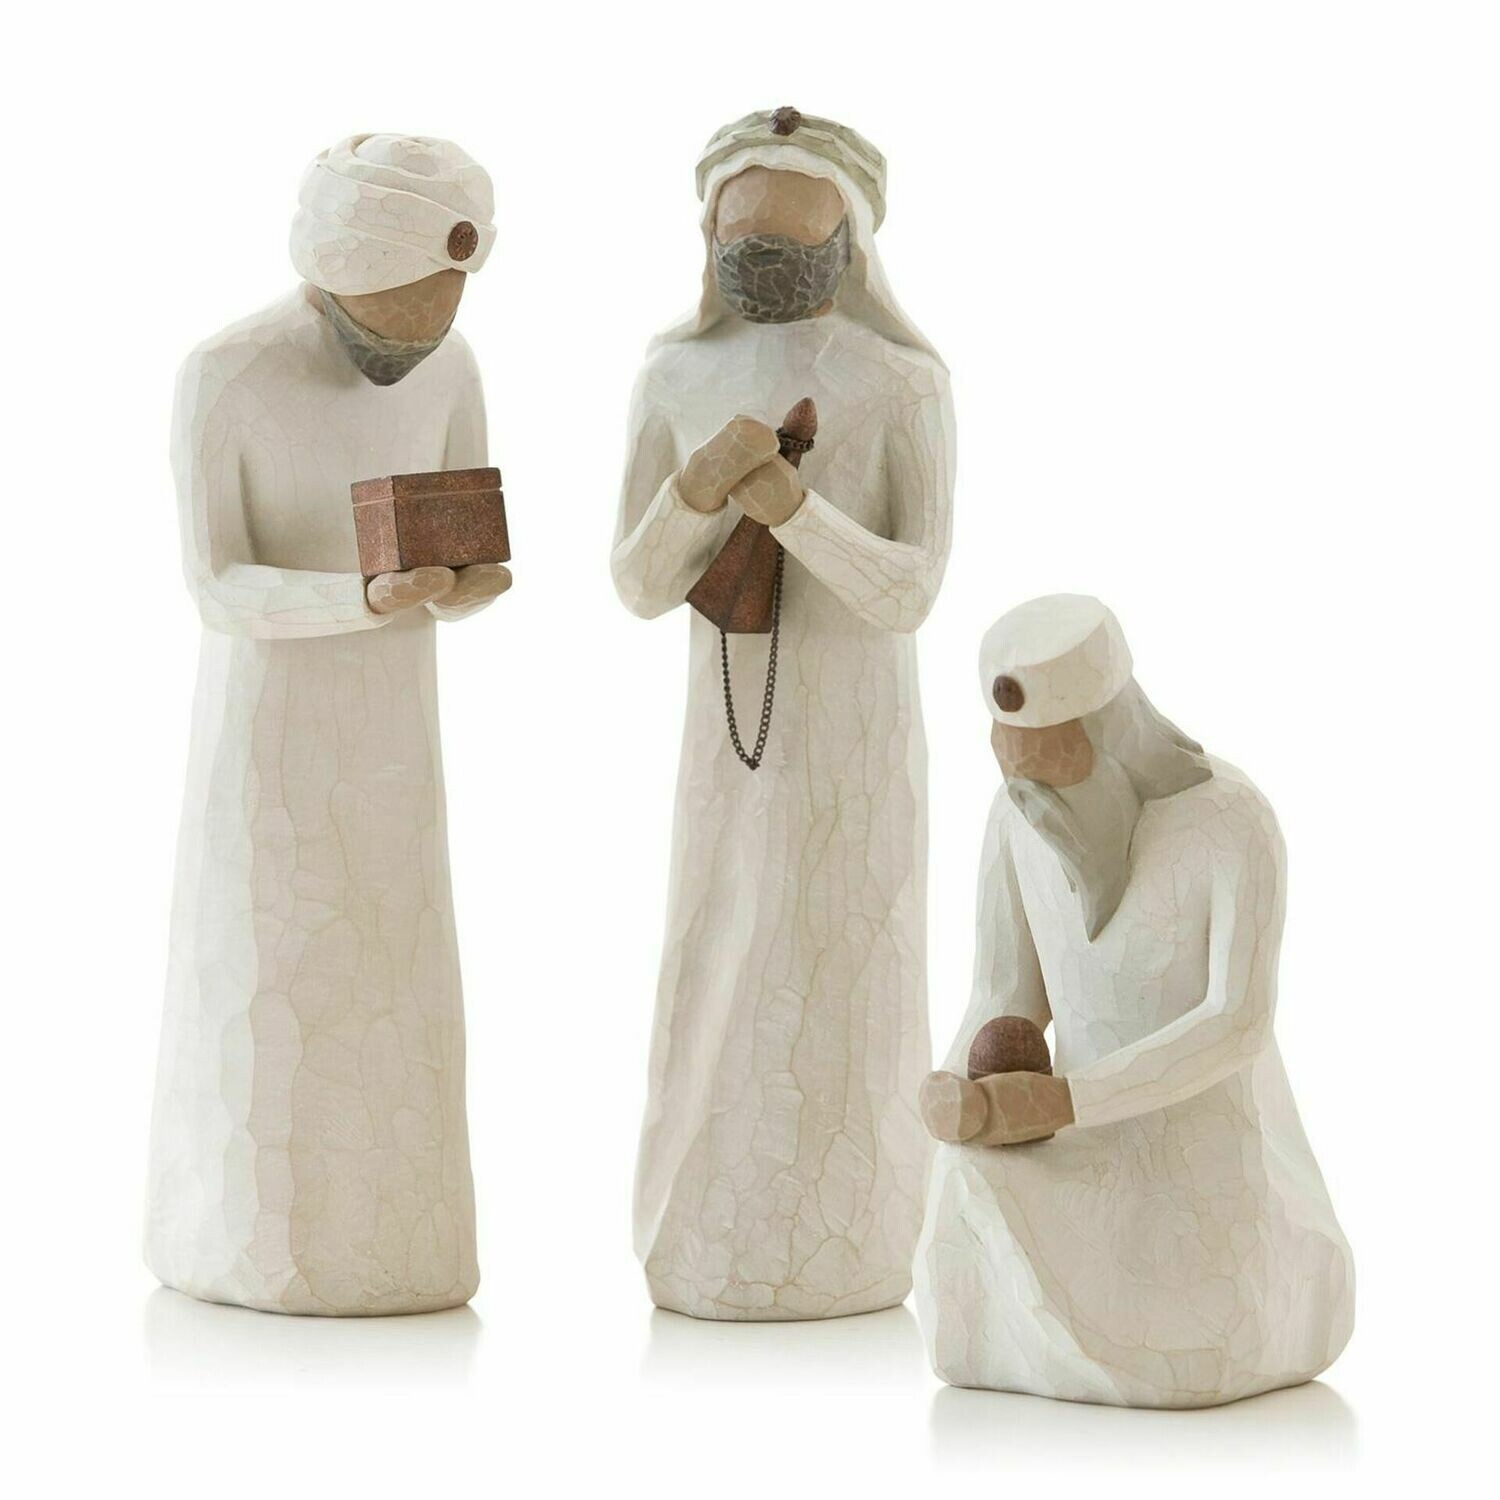 Willow Tree: Nativity Collection - Wisemen - 3 pieces